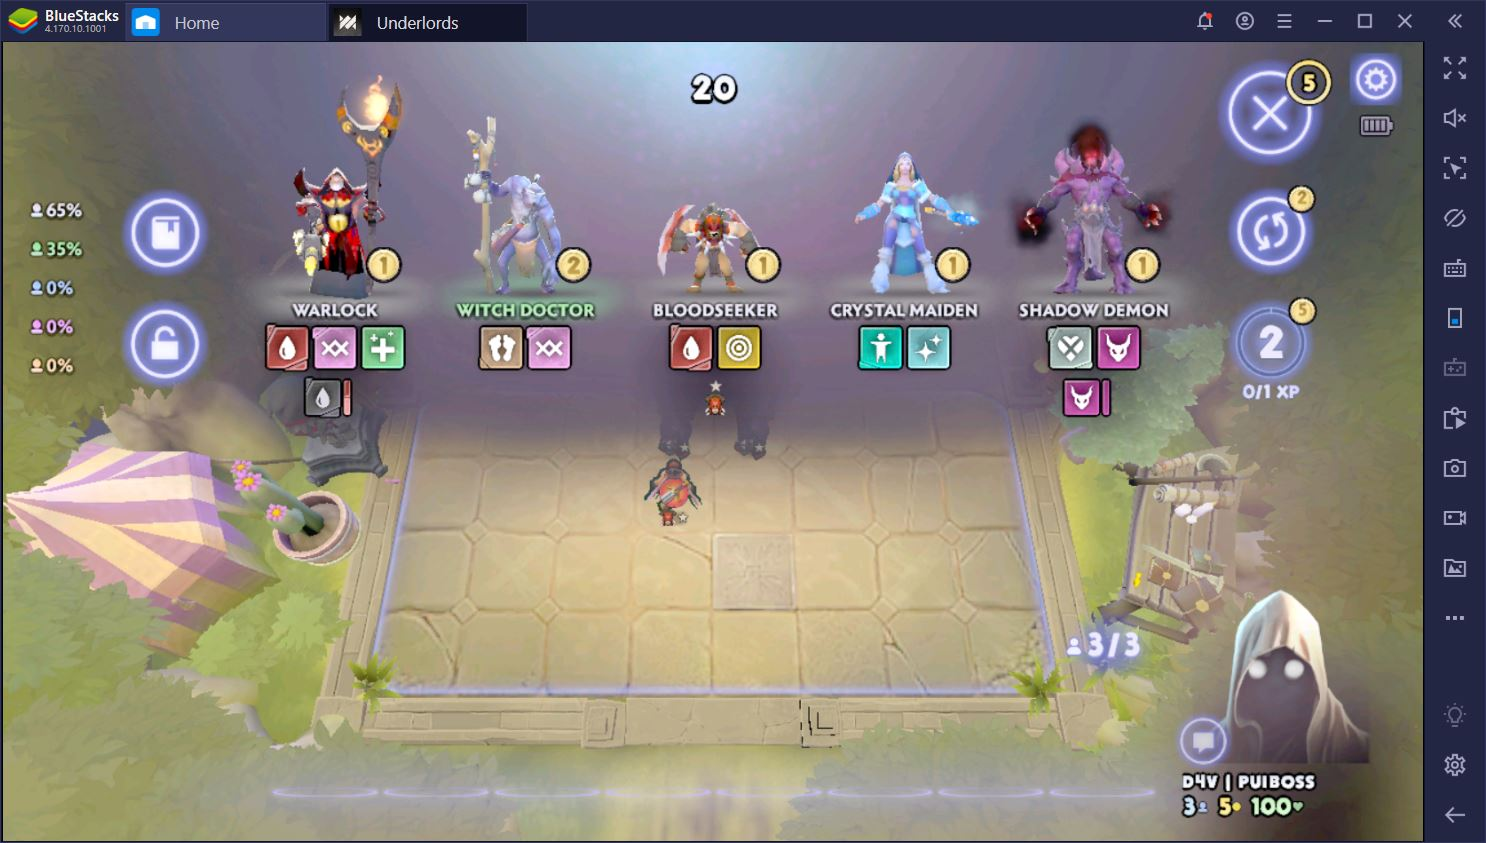 DotA Underlords on PC: Updated Guide for Returning Beta Players